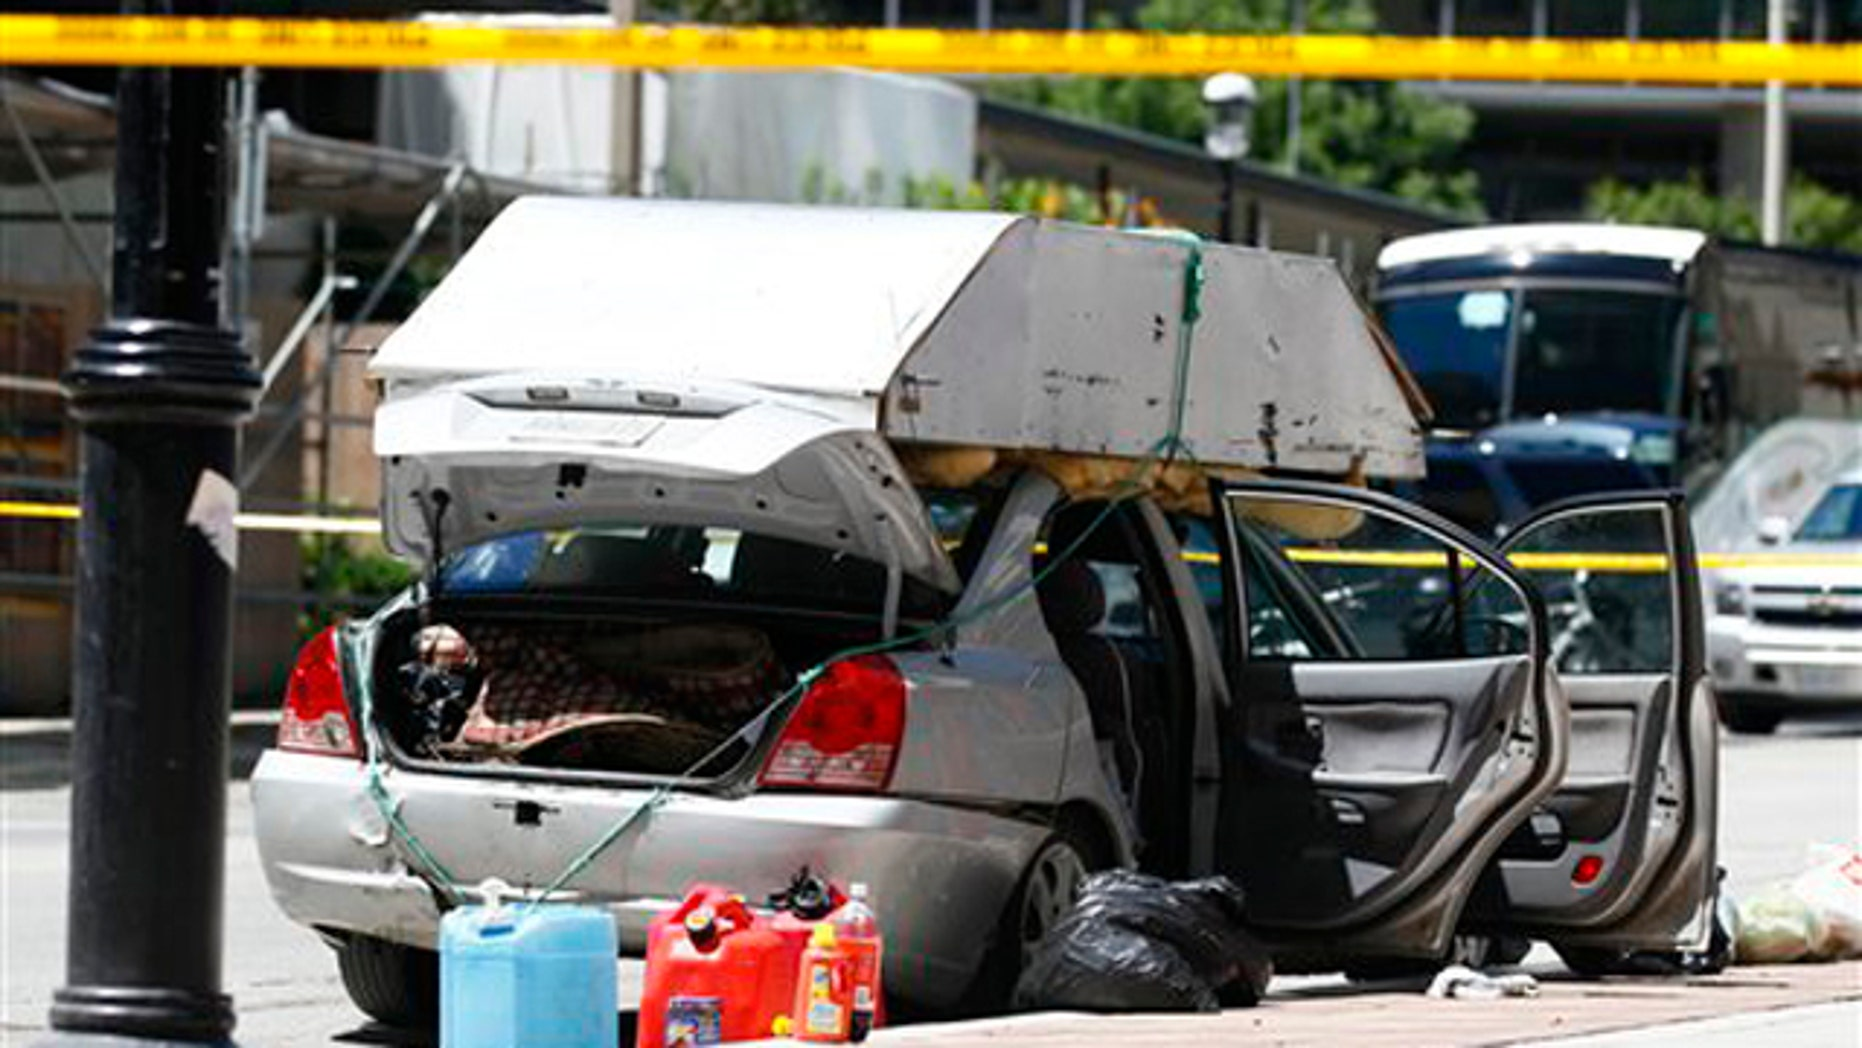 June 24: A car seized by police sits near the intersection of Scott Street and Esplanade in Toronto.